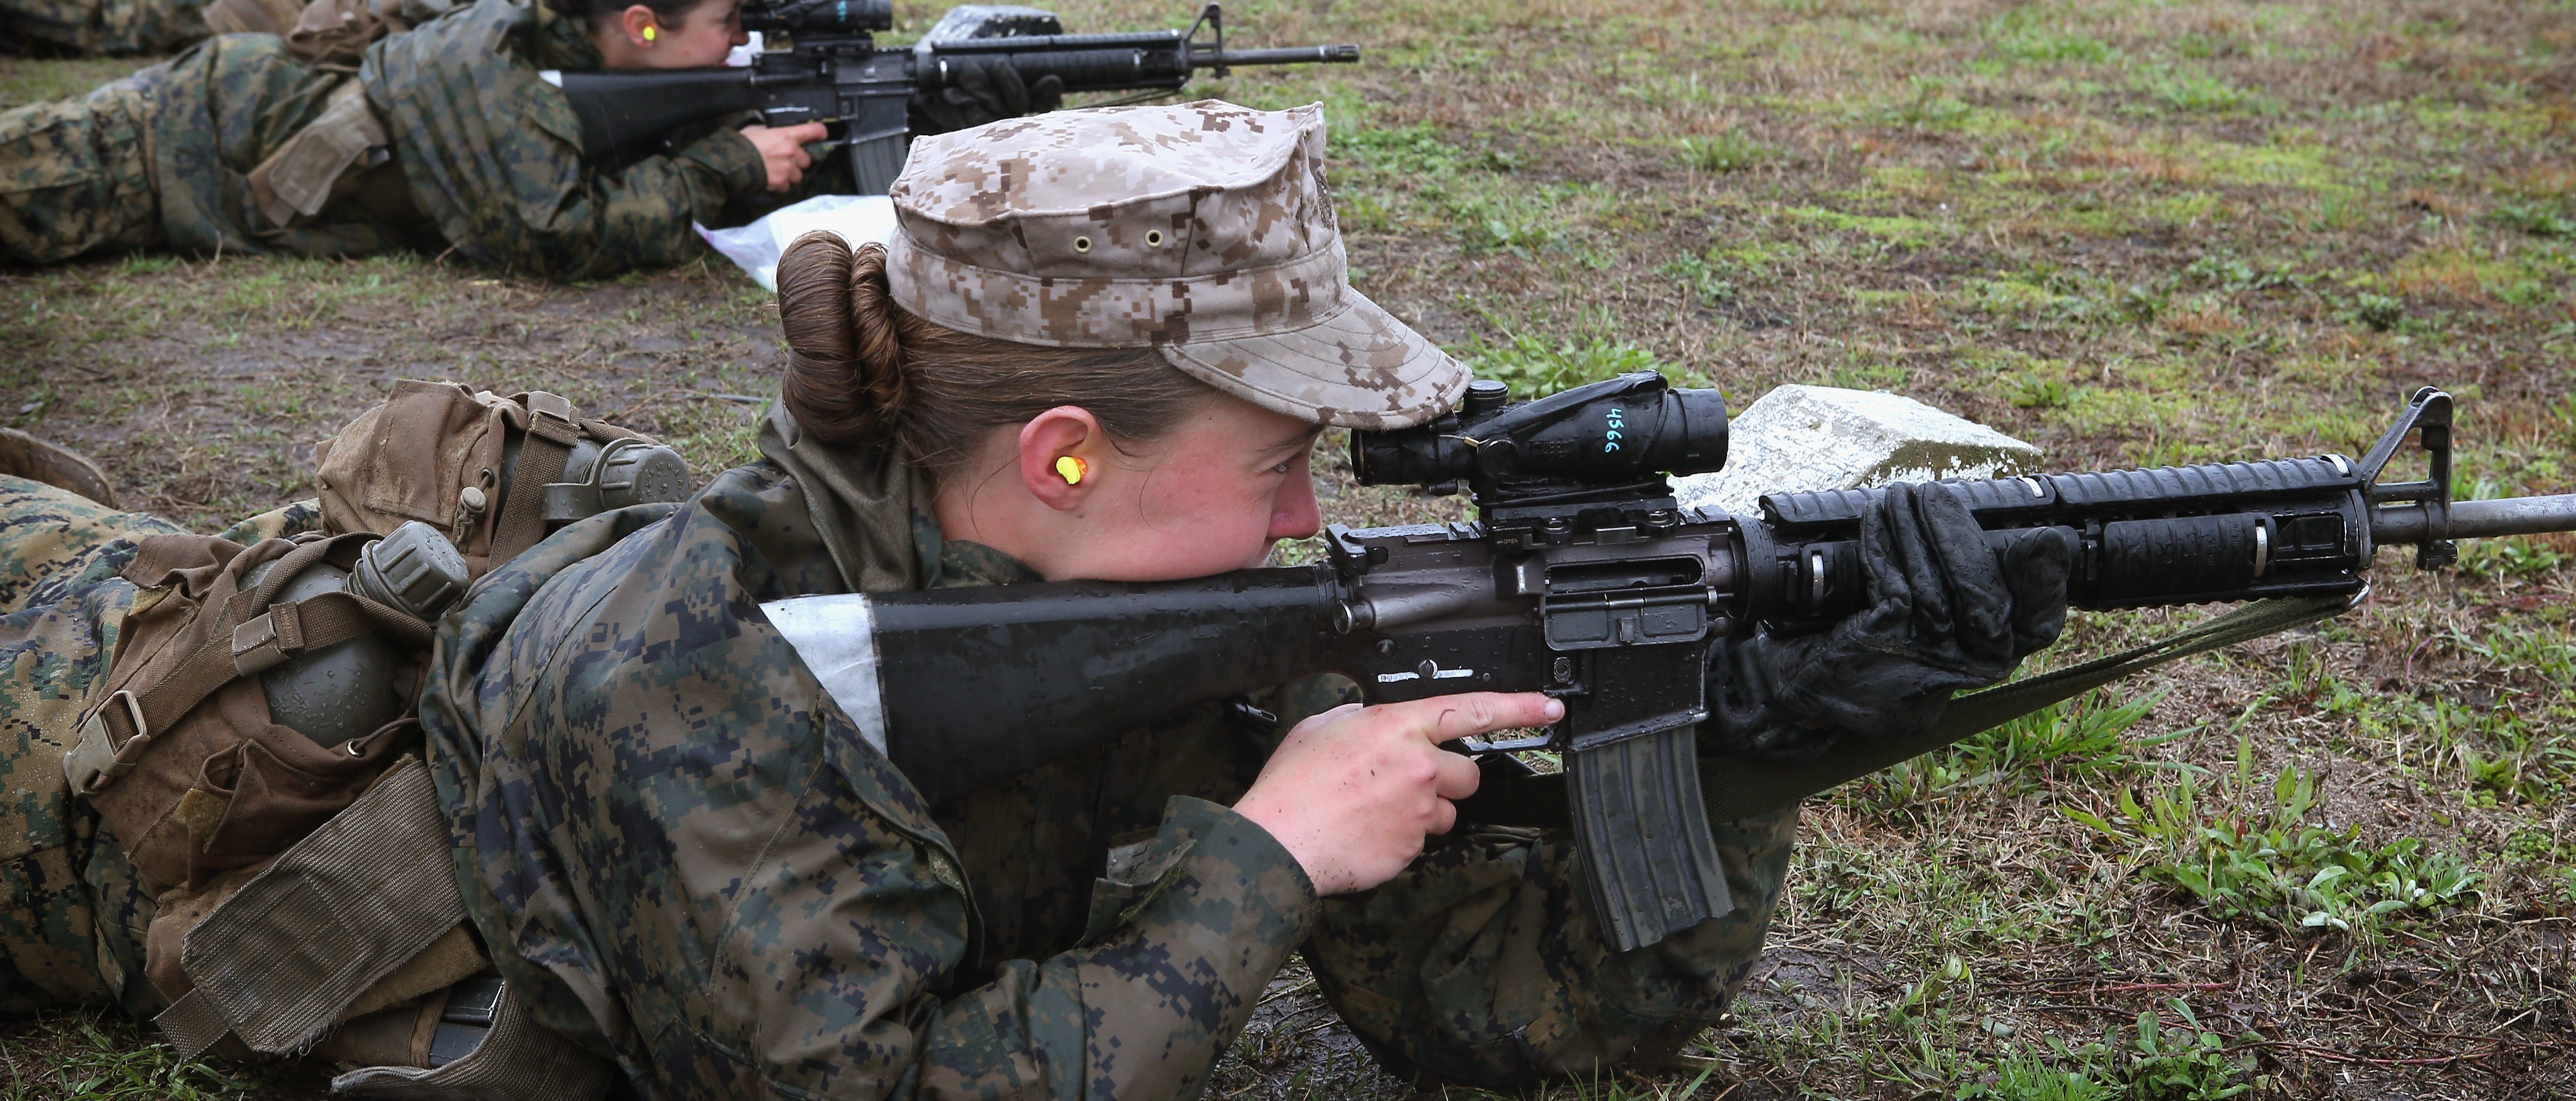 US Army Invests In Studying 'Hyperfit' Women Who Pass Its